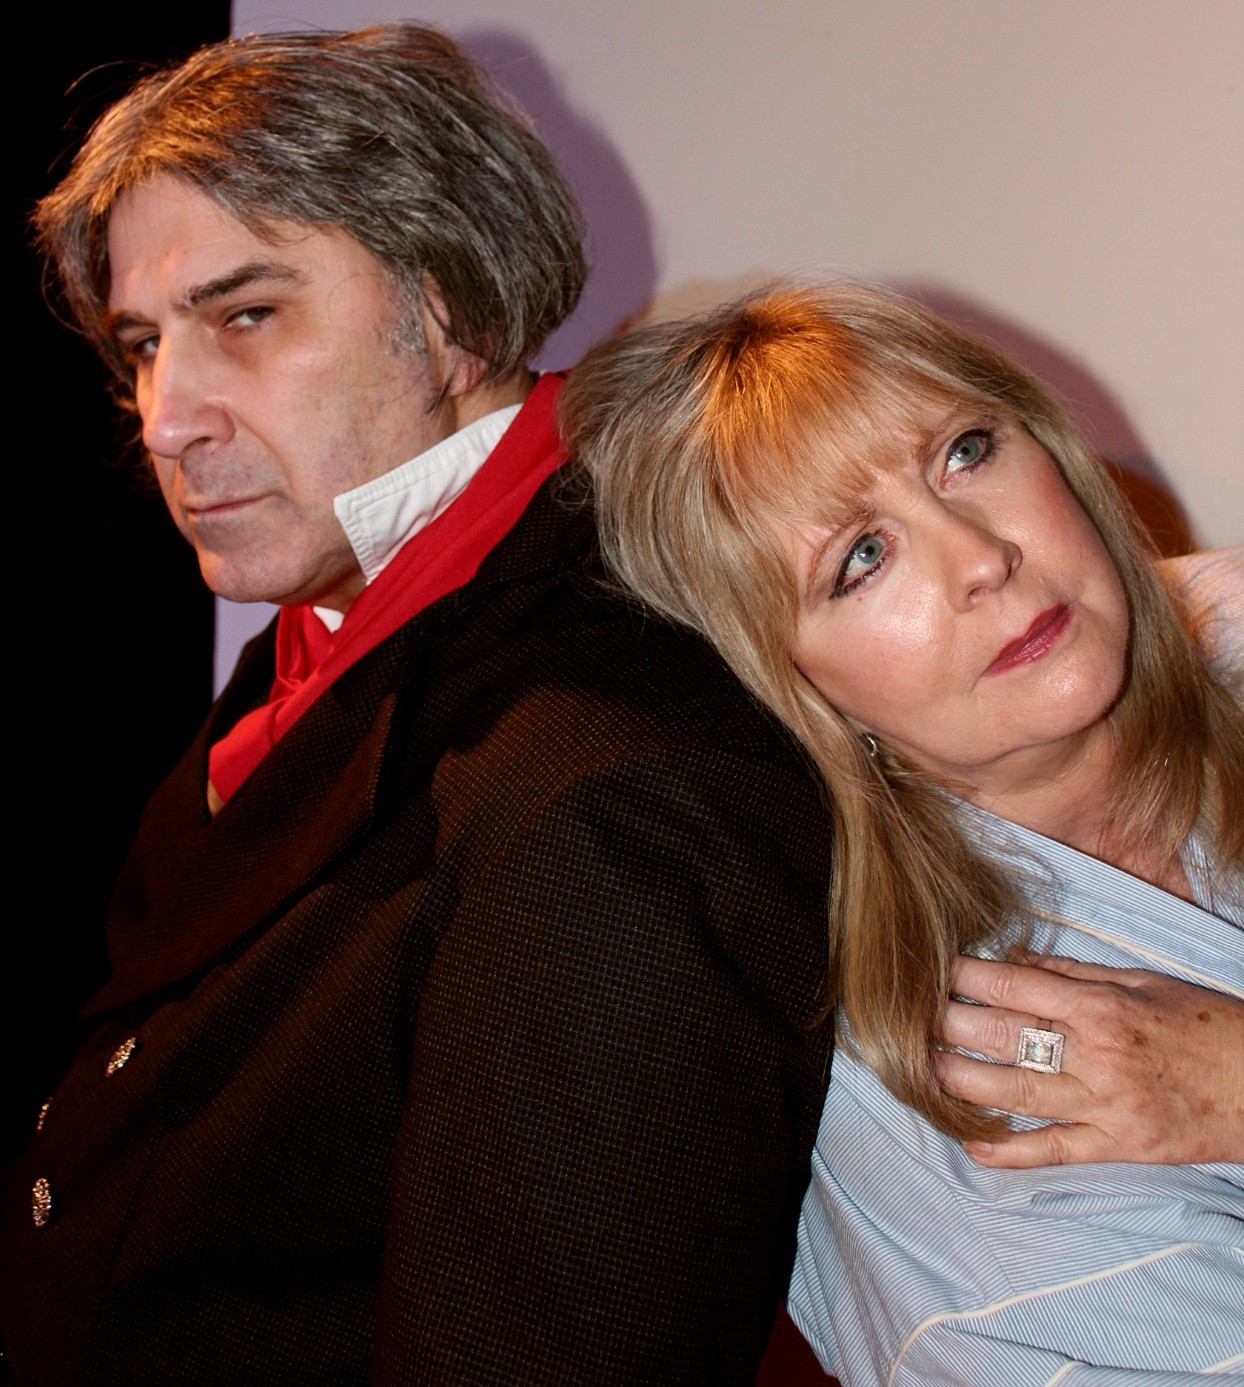 BWW Review: 33 VARIATIONS delights at Theatre Baton Rouge